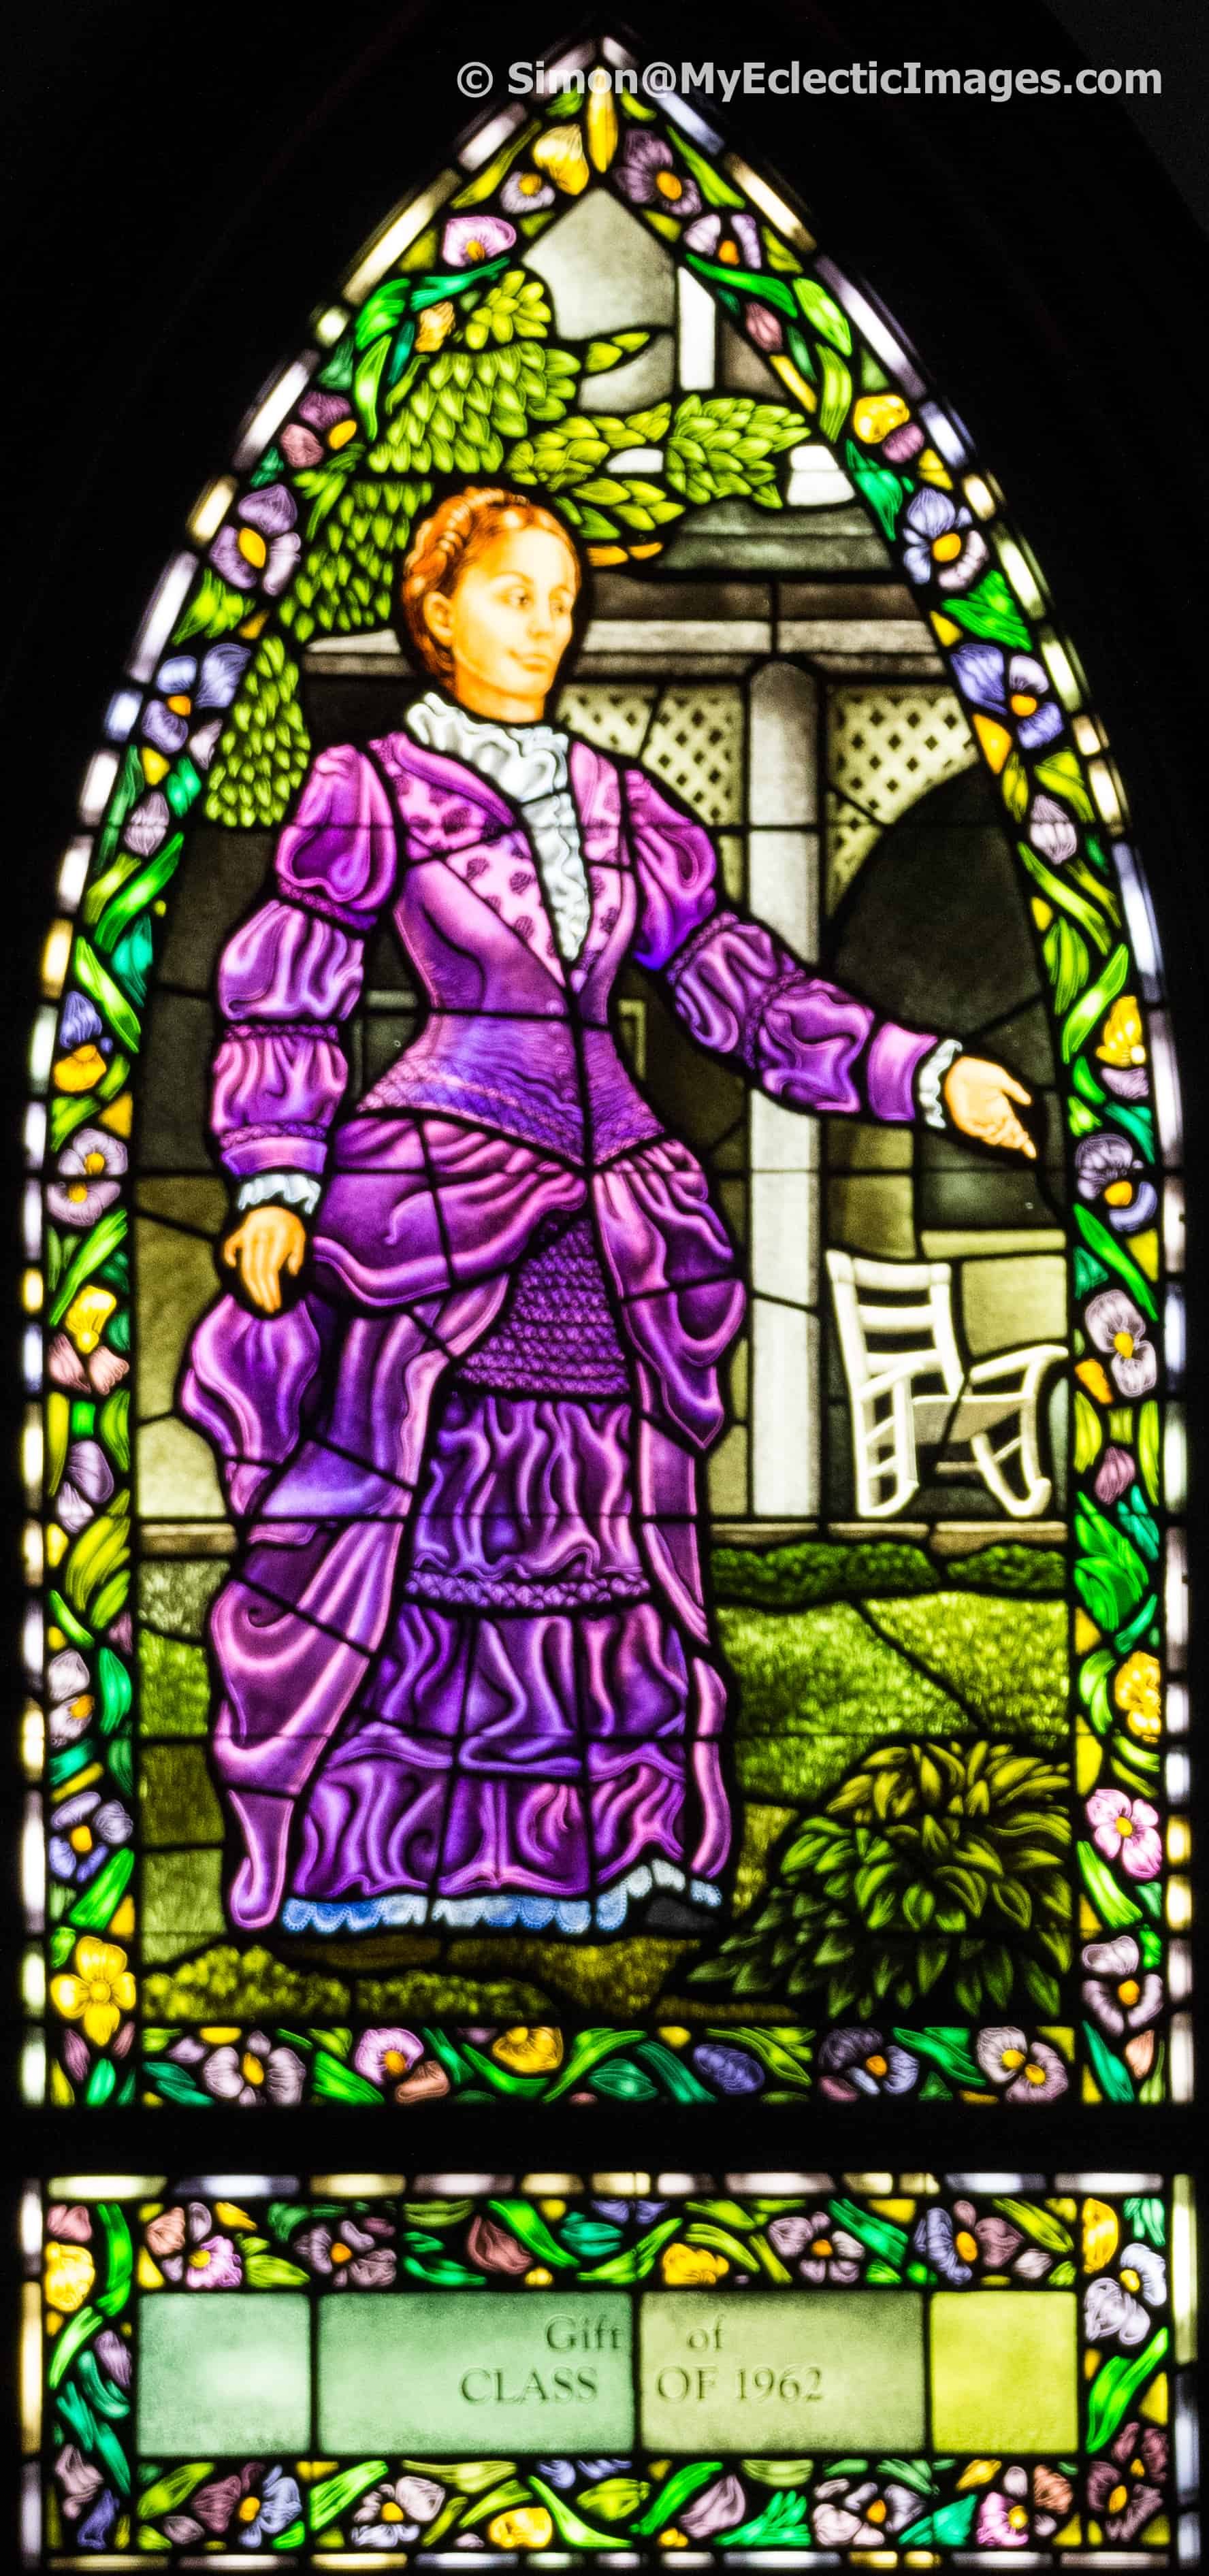 Commemorating Olivia Langdon Clemens in stained glass in chapel of Cowles Hall